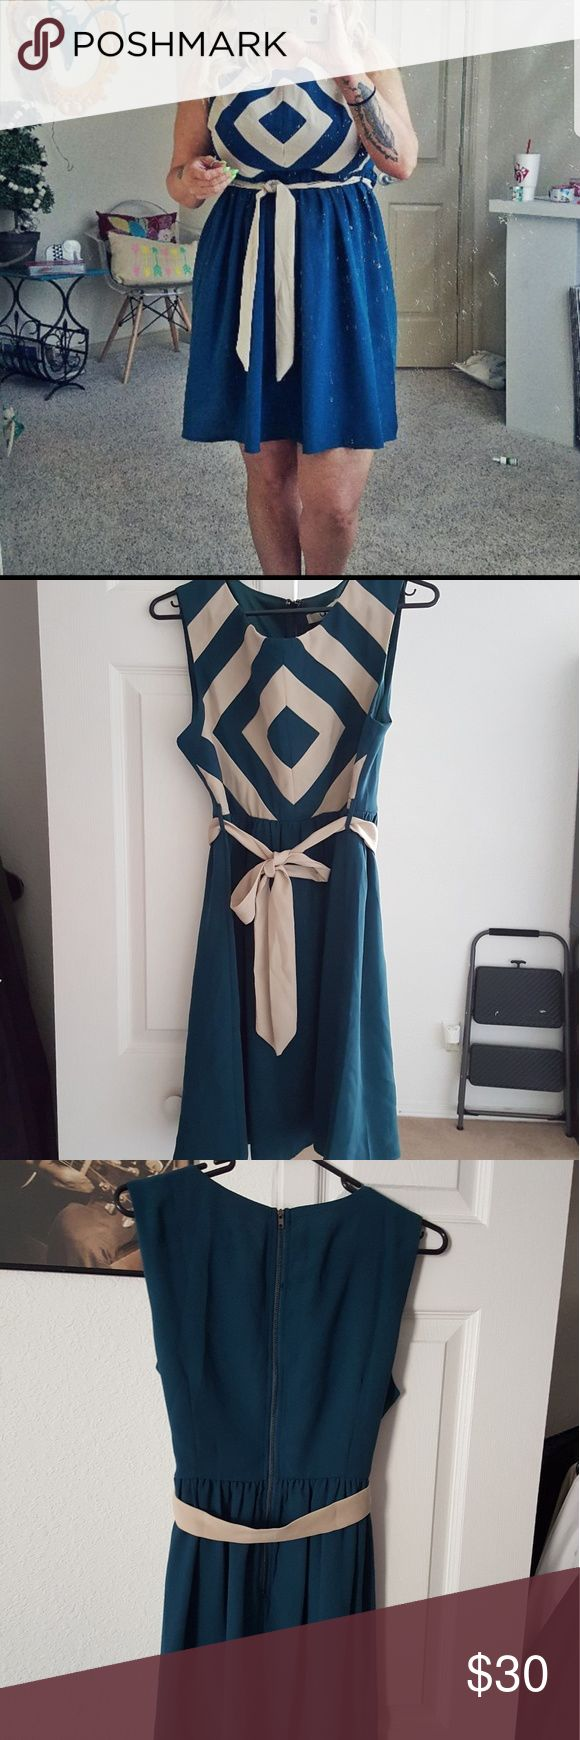 BNWT boutique dress Gorgeous women's dark teal and cream dress with the around waist and zip up back. pet and smoke free home.  size large Ya Los Angeles Dresses Midi